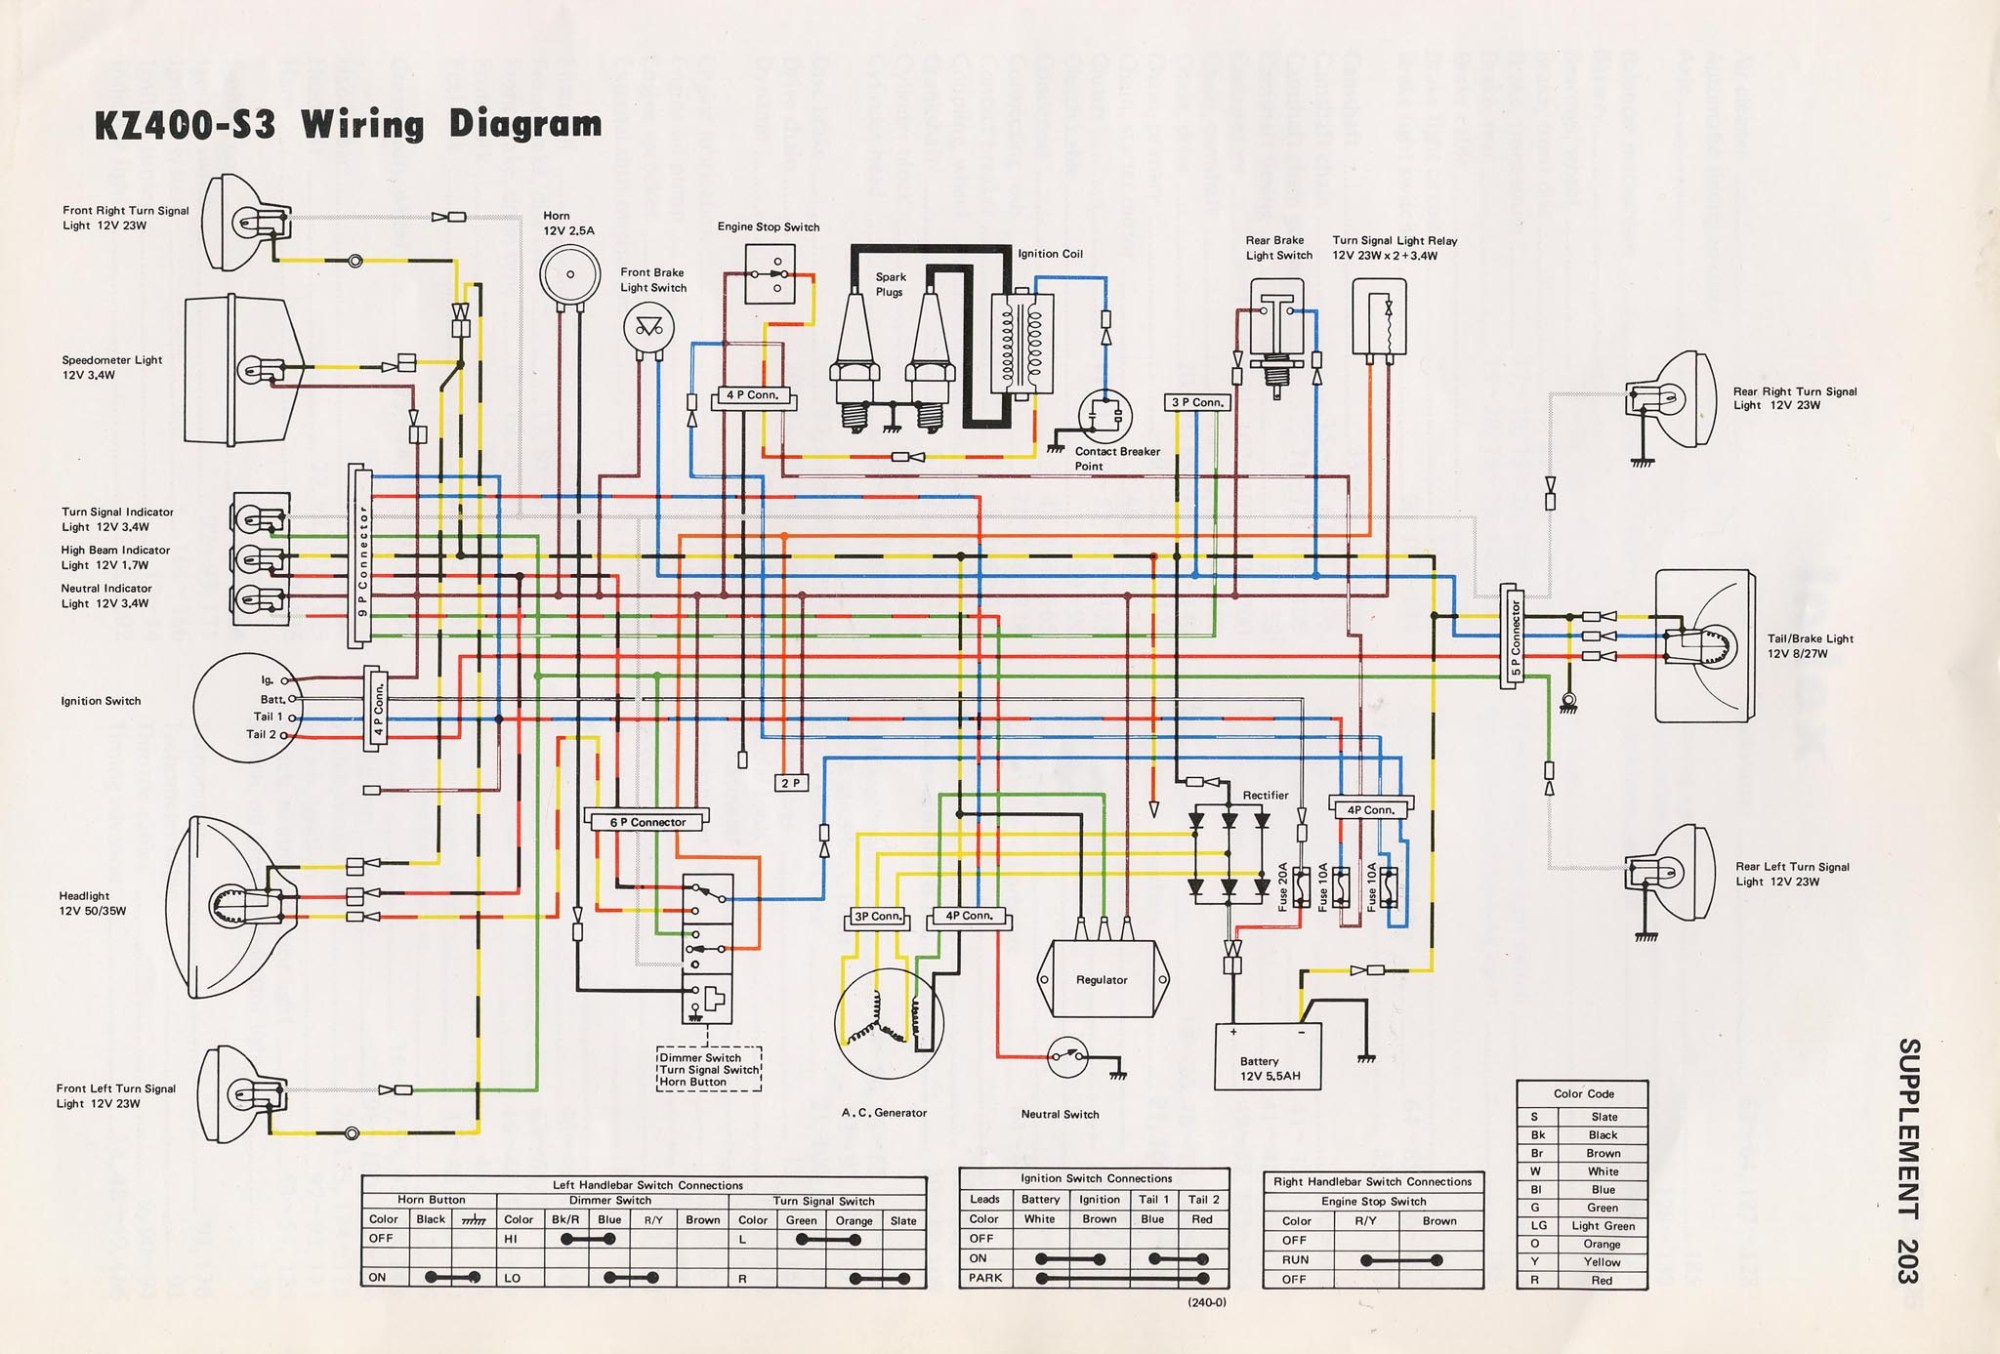 hight resolution of kz400 wiring helpkz400 wiring diagram 1